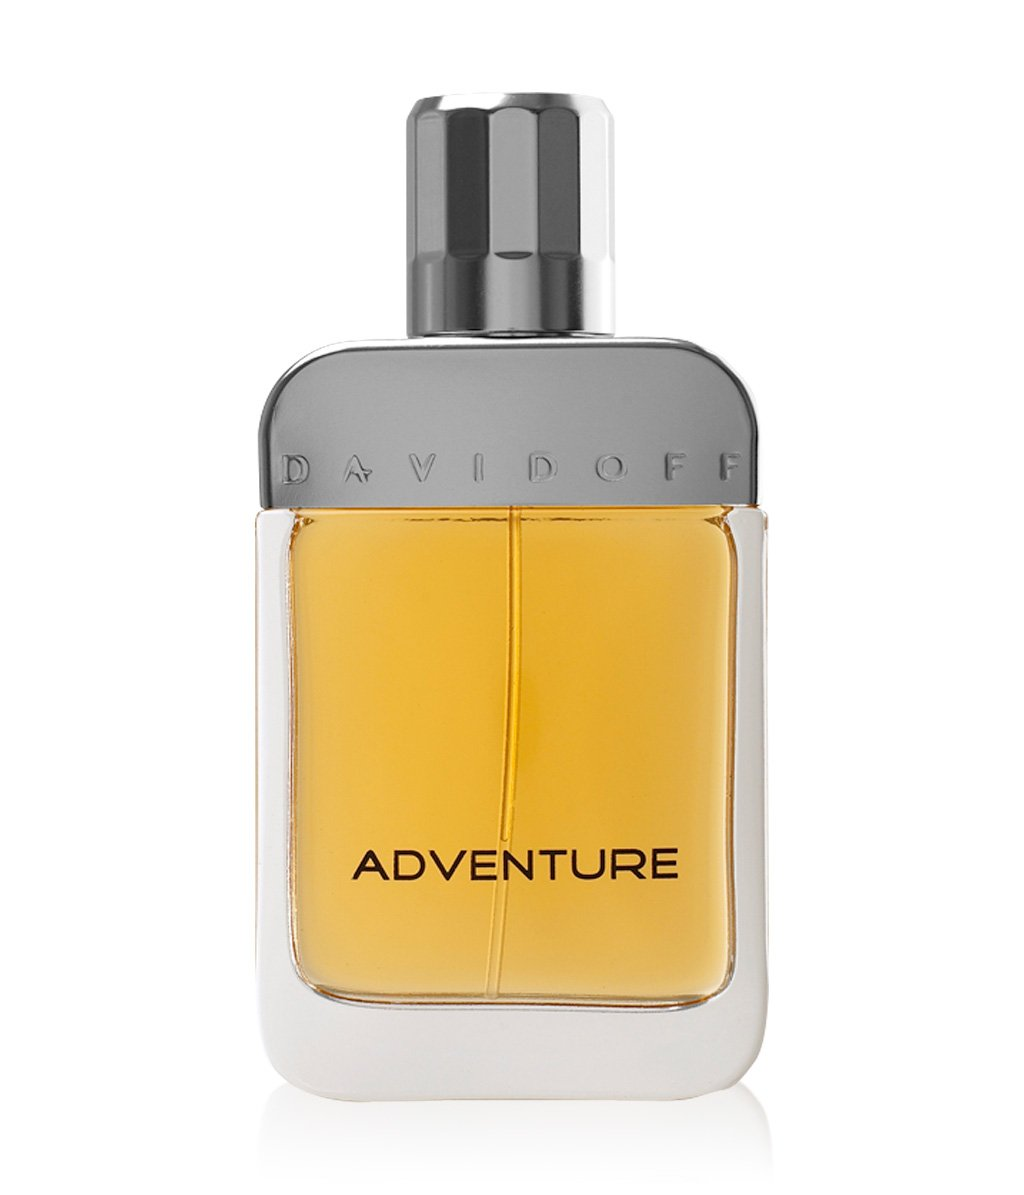 davidoff adventure parfum online bestellen flaconi. Black Bedroom Furniture Sets. Home Design Ideas